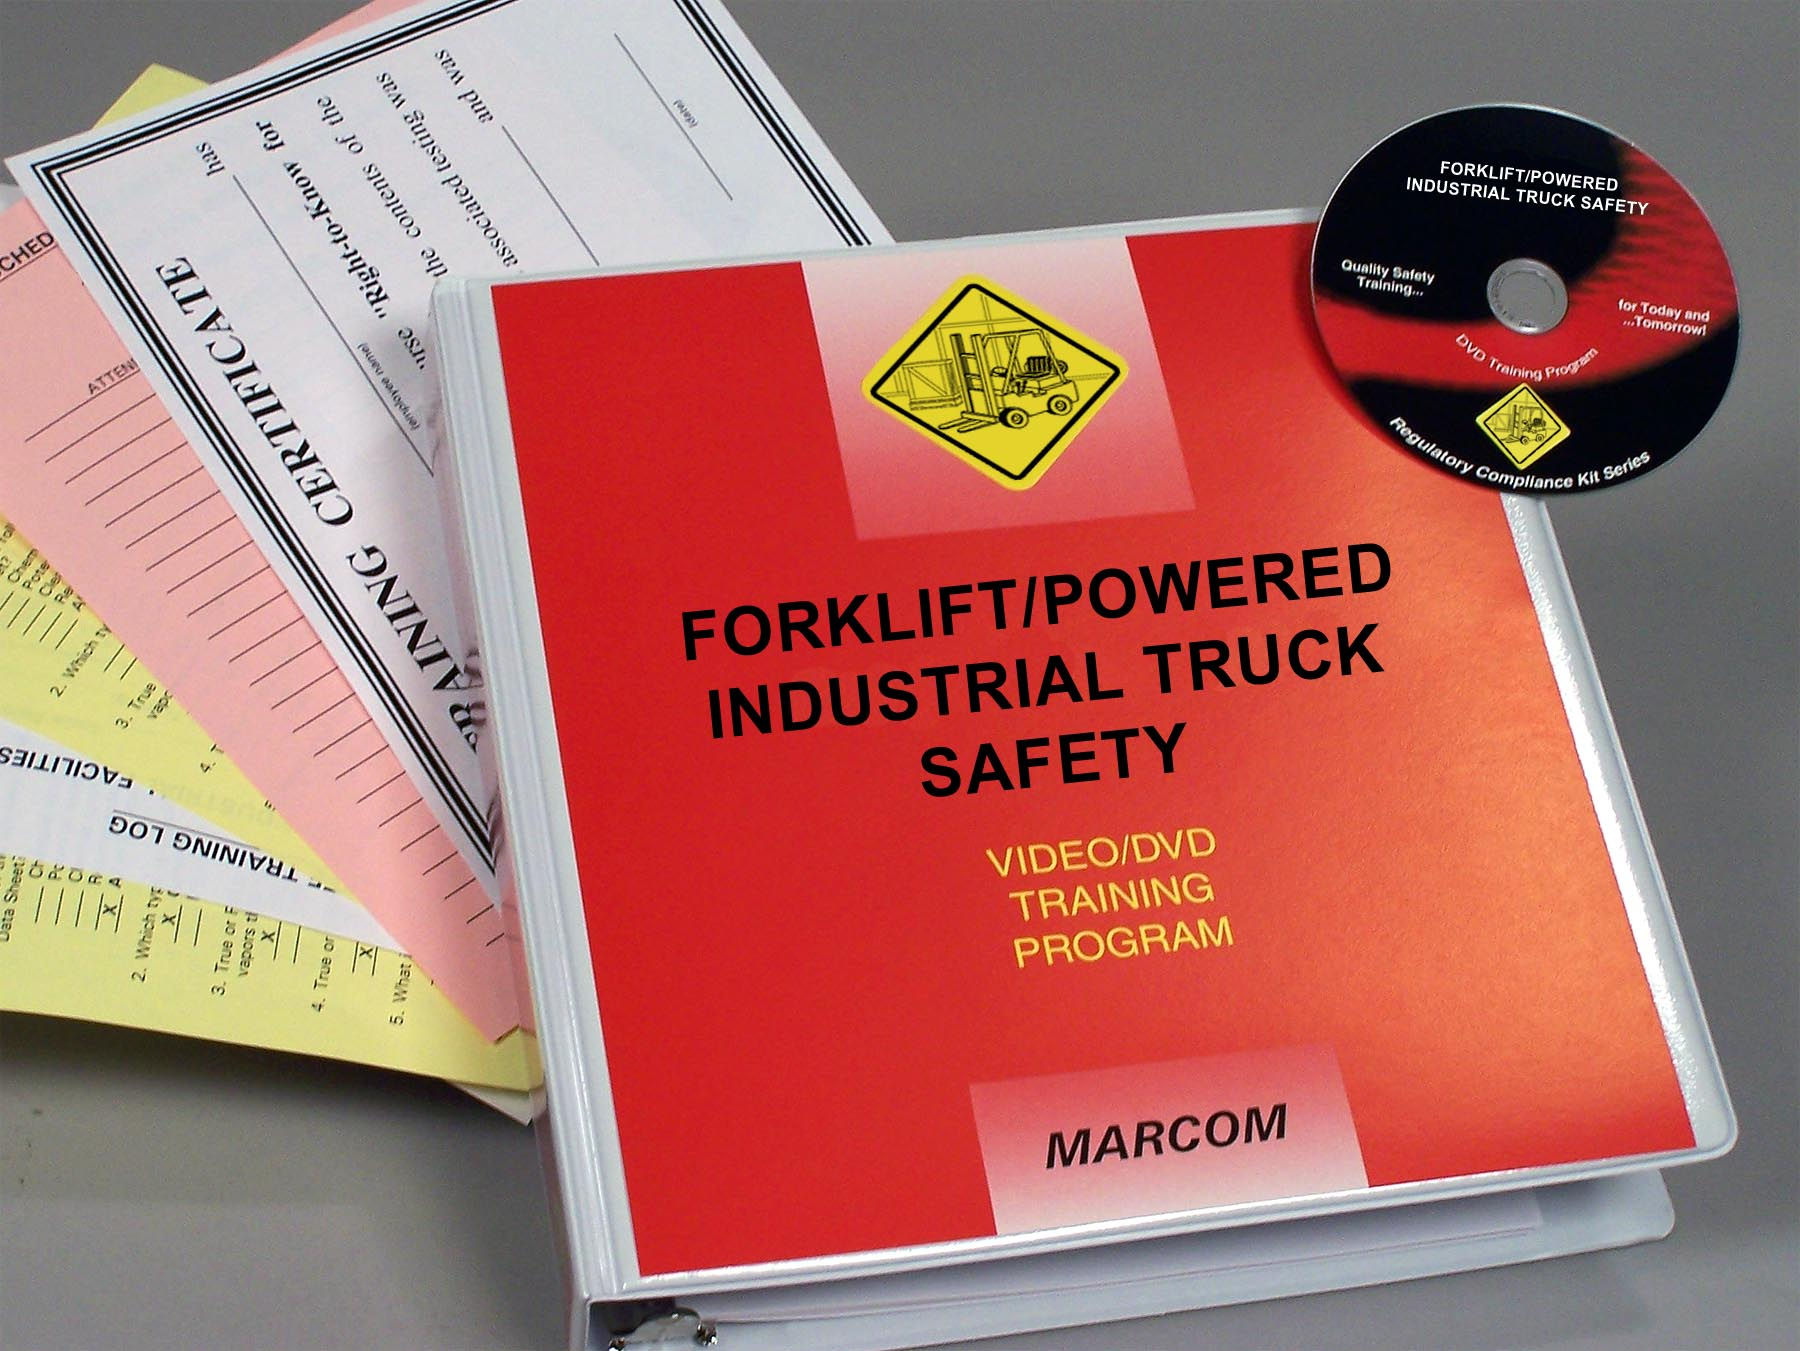 MARCOM's Forklift/Powered Industrial Truck Safety DVD Program has been designed to give employees the information they need to work safely with this equipment, while helping employers comply with OSHA's Powered Industrial Truck Standard. The DVD program comes with a comprehensive leader's guide, reproducible scheduling & attendance form, employee quiz, training certificate and training log.